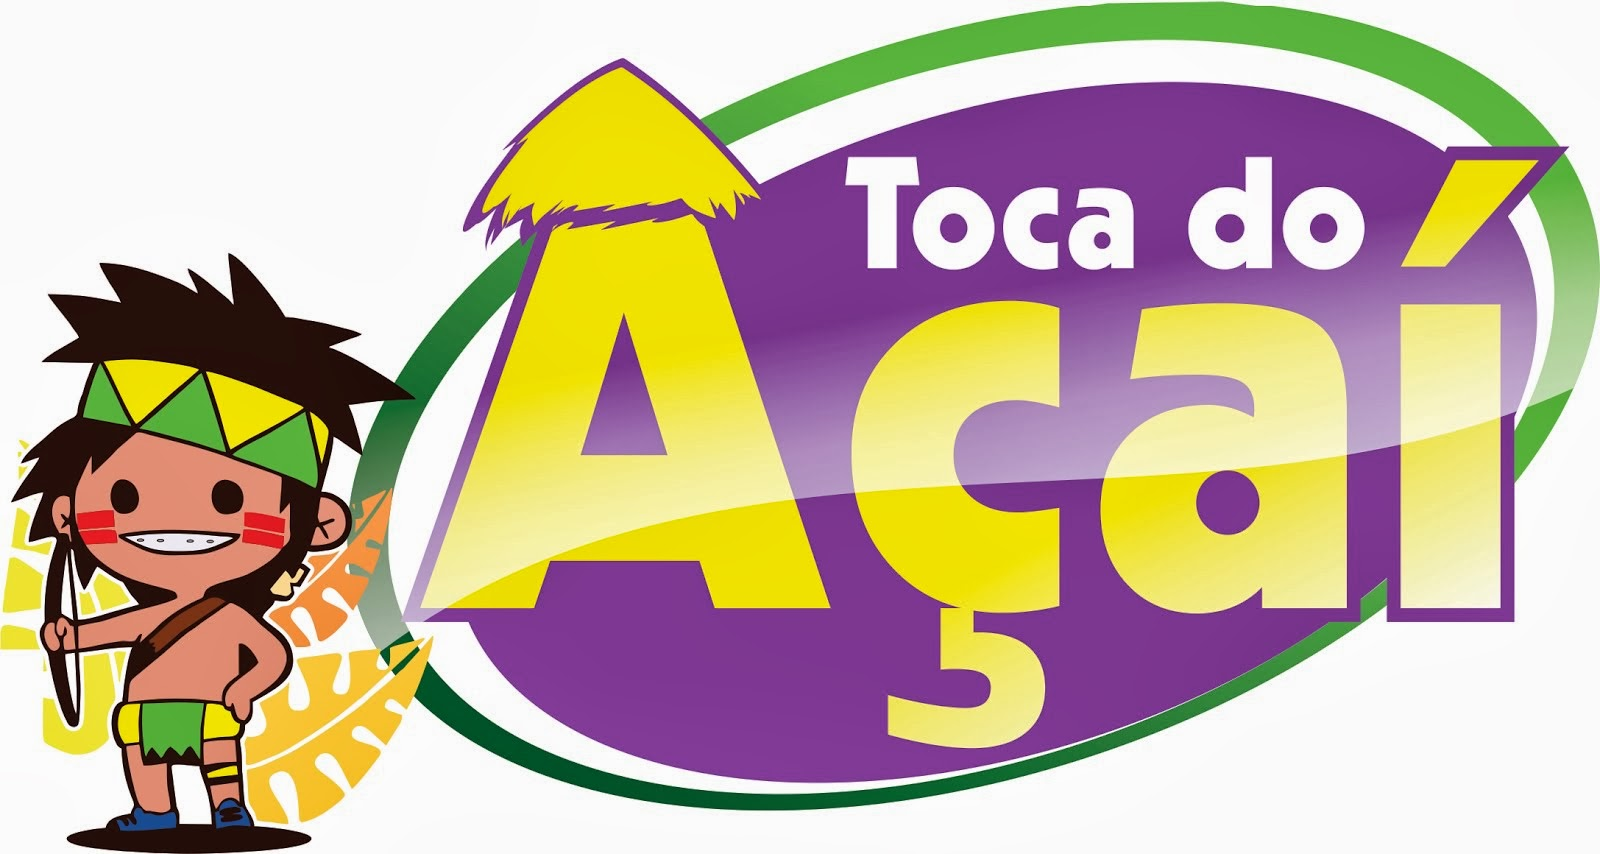 TOCA DO AÇAÍ - Org.: Henrique